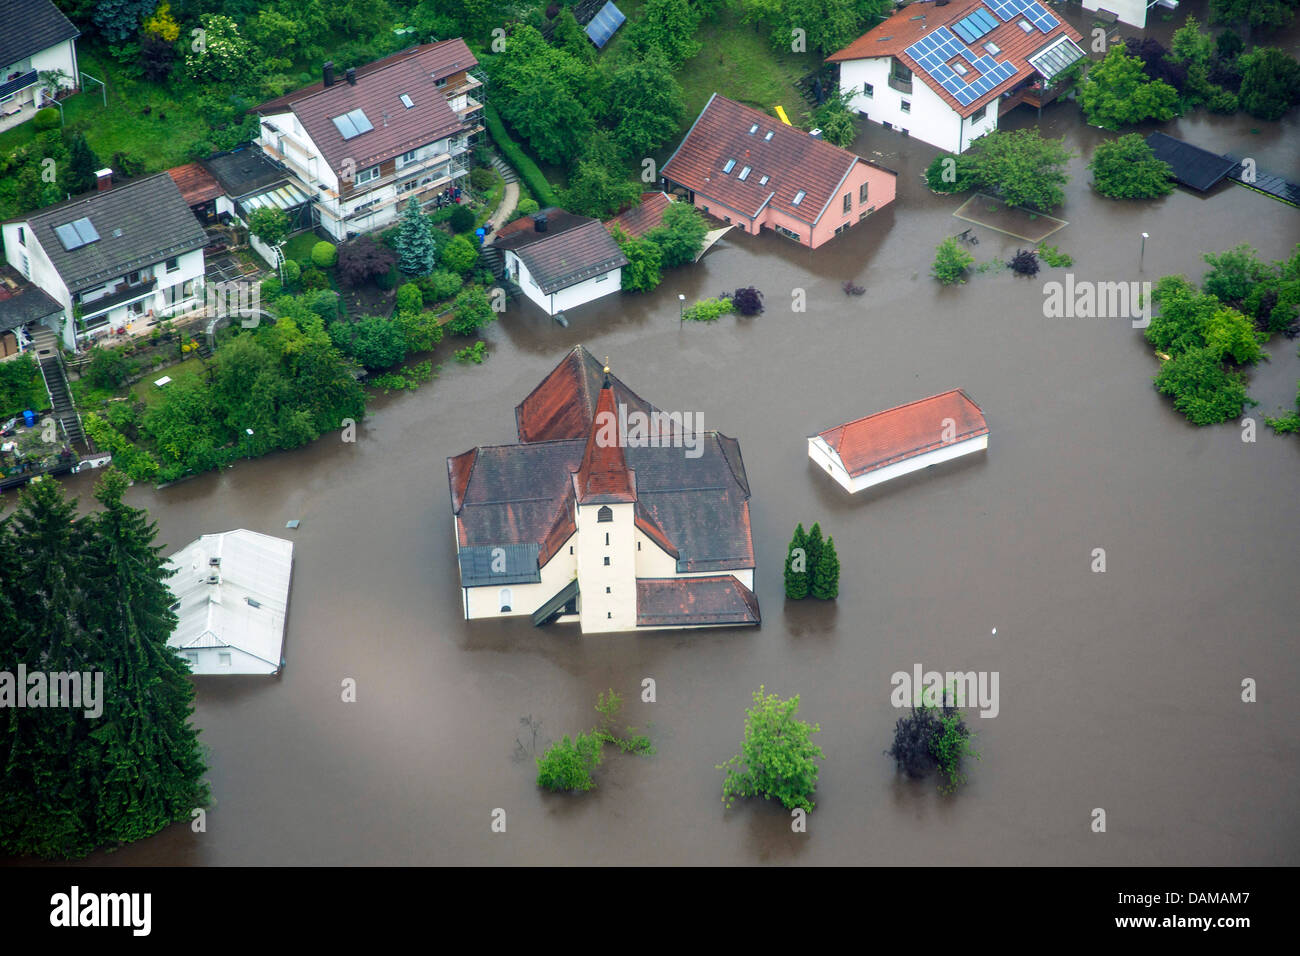 church and houses at rivers Ilz flooded in June 2013, Germany, Bavaria, Passau - Stock Image